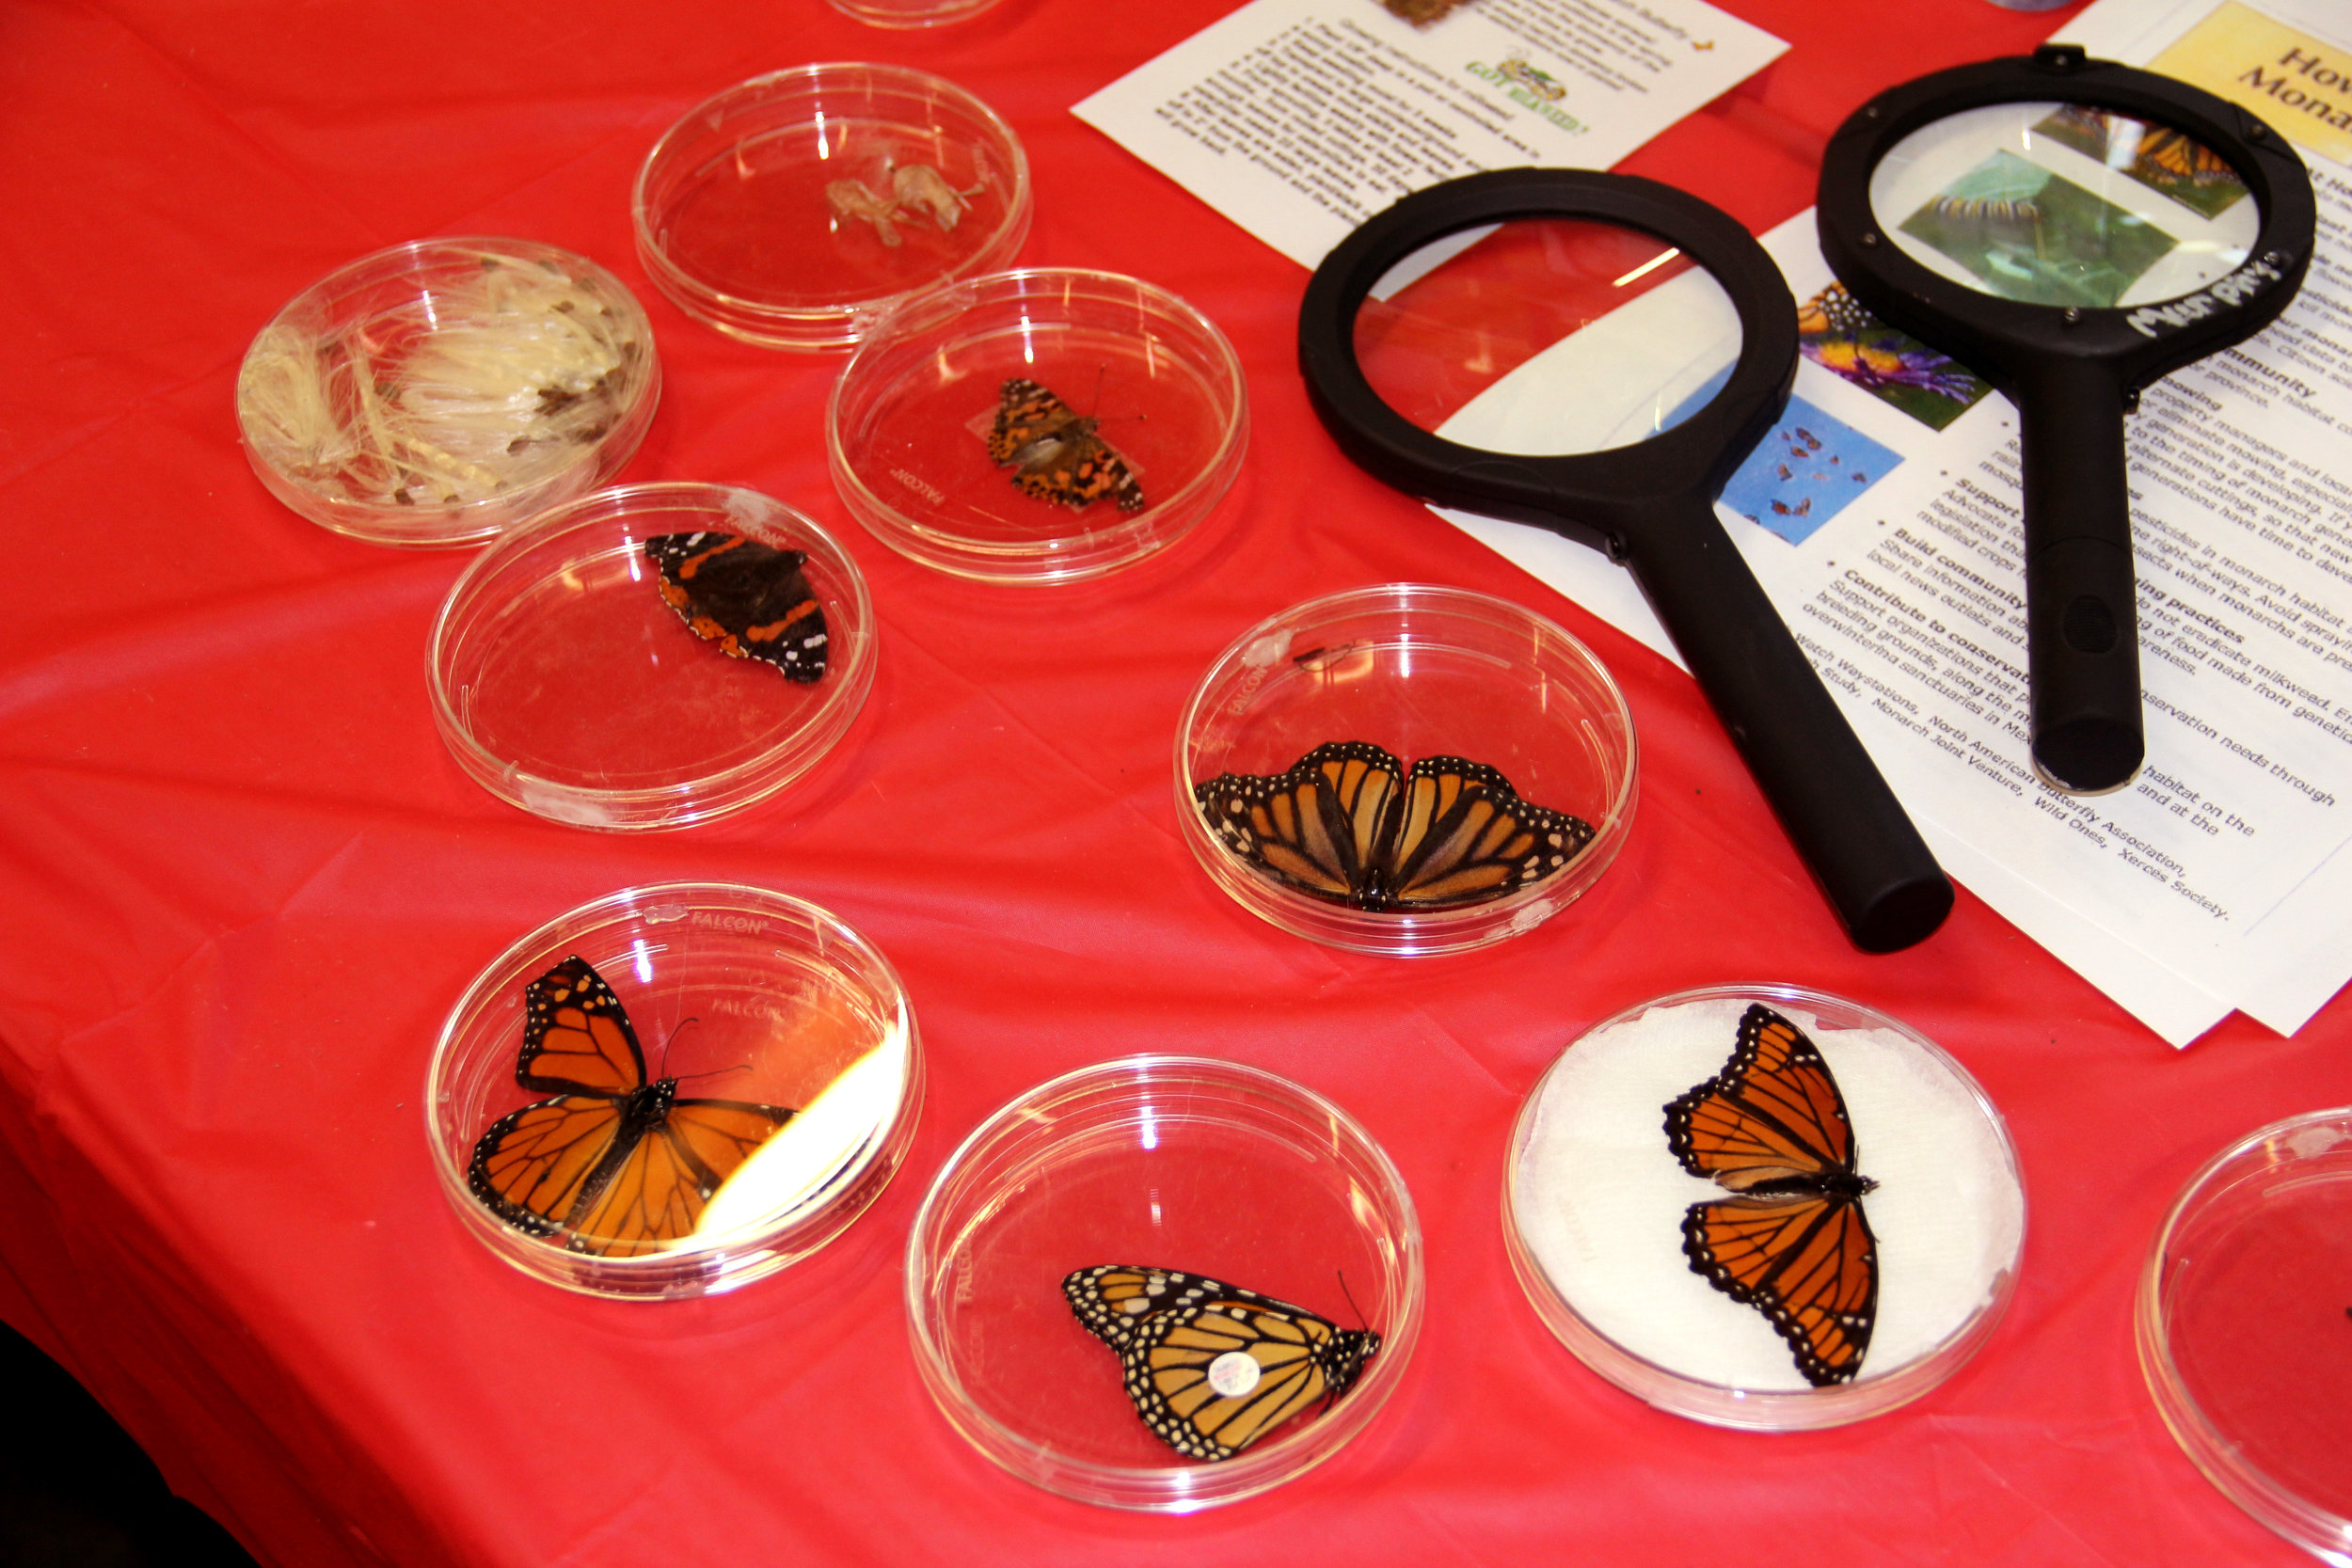 Butterflies on display at Earth Fest, an event put on by Iowa City to raise awareness about sustainability